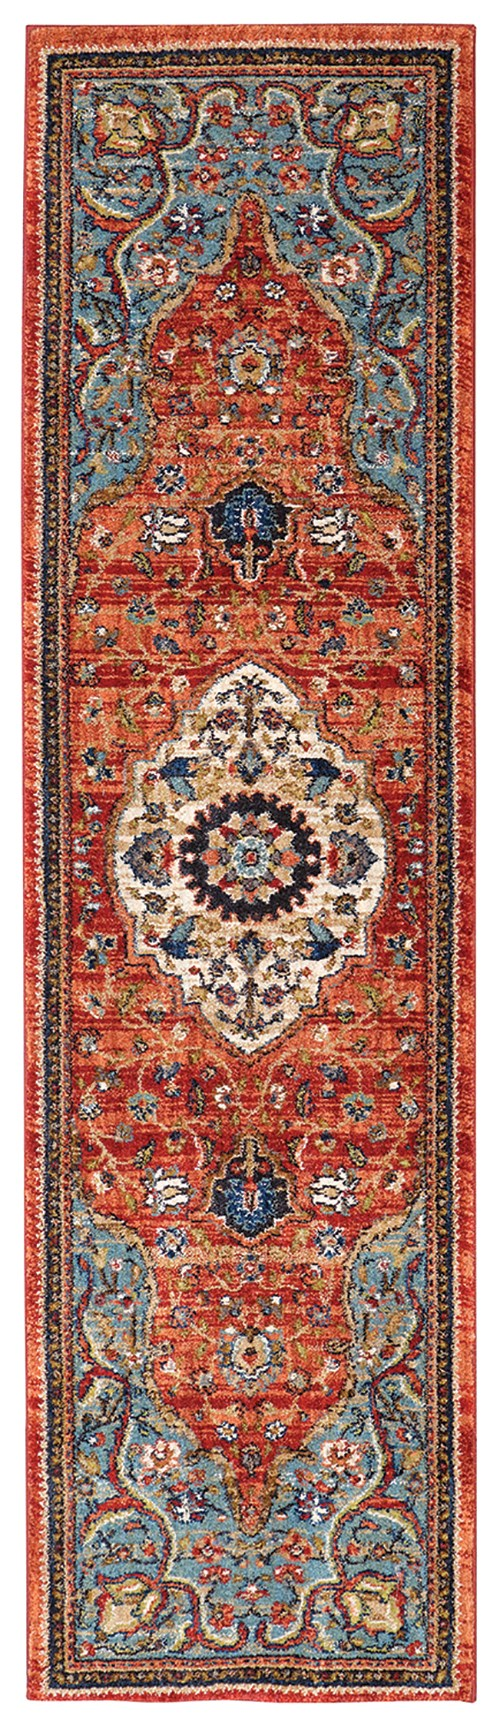 Blue, Red (90661-90097) Traditional / Oriental Area Rug